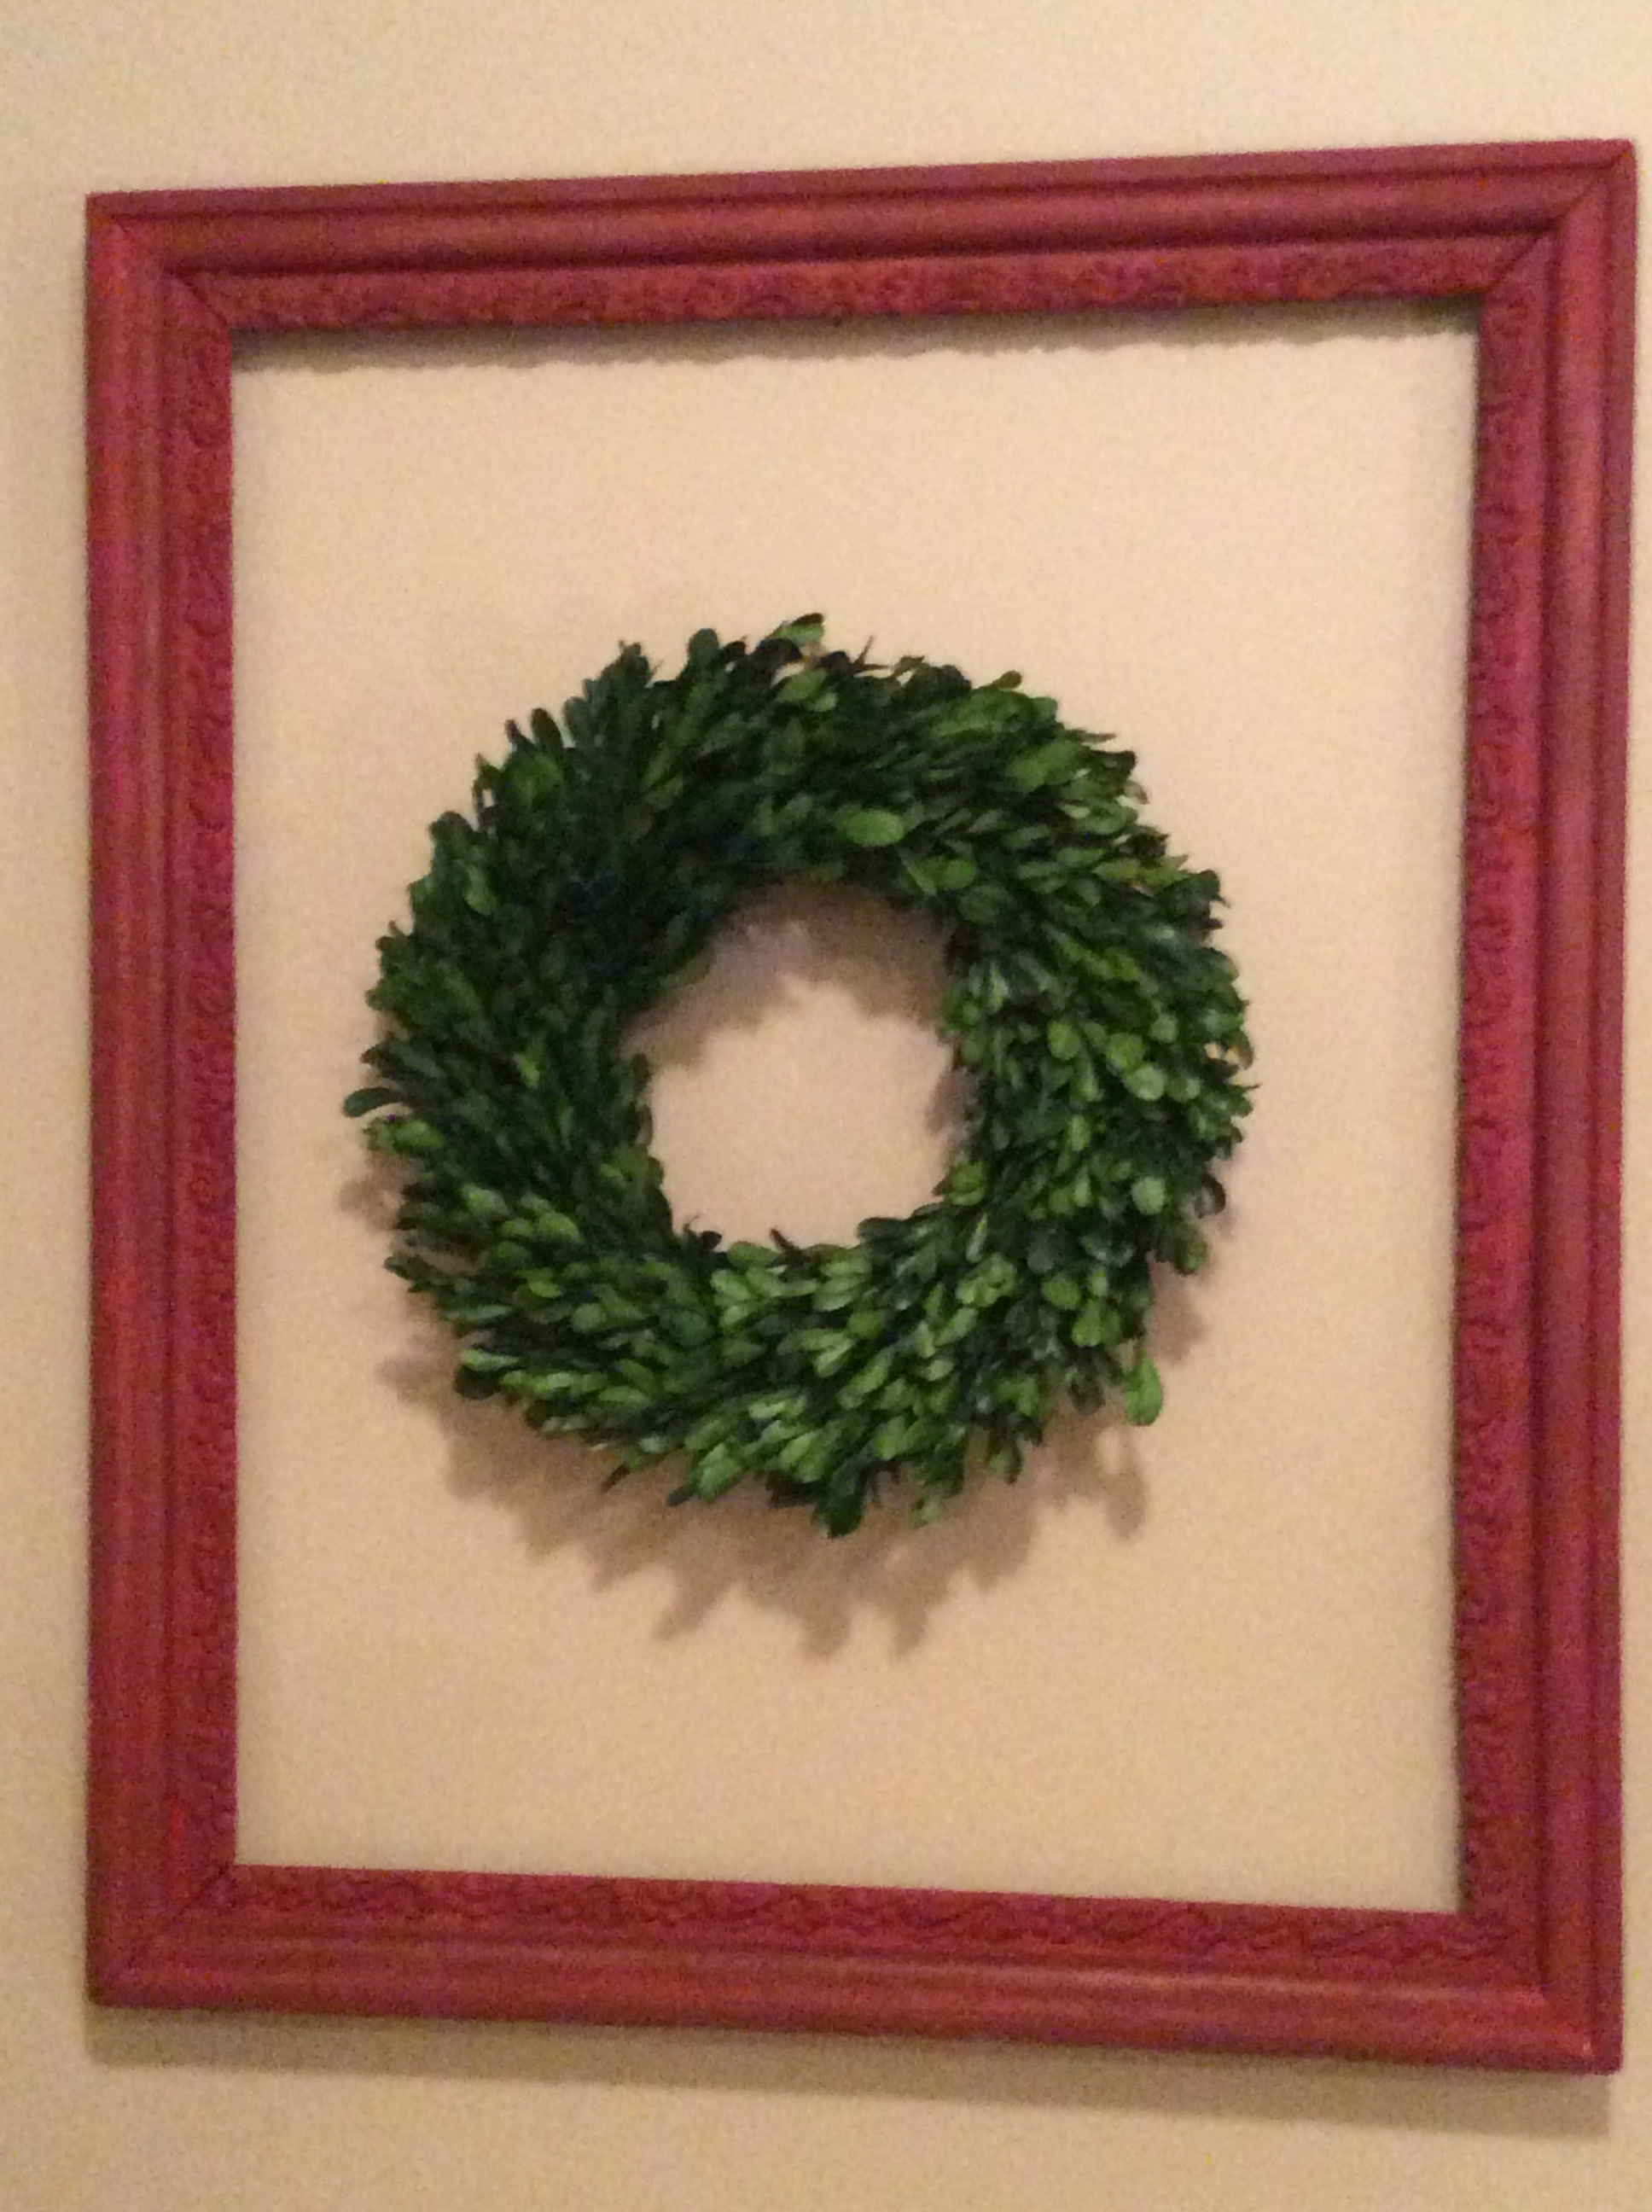 Wreath in painted frame